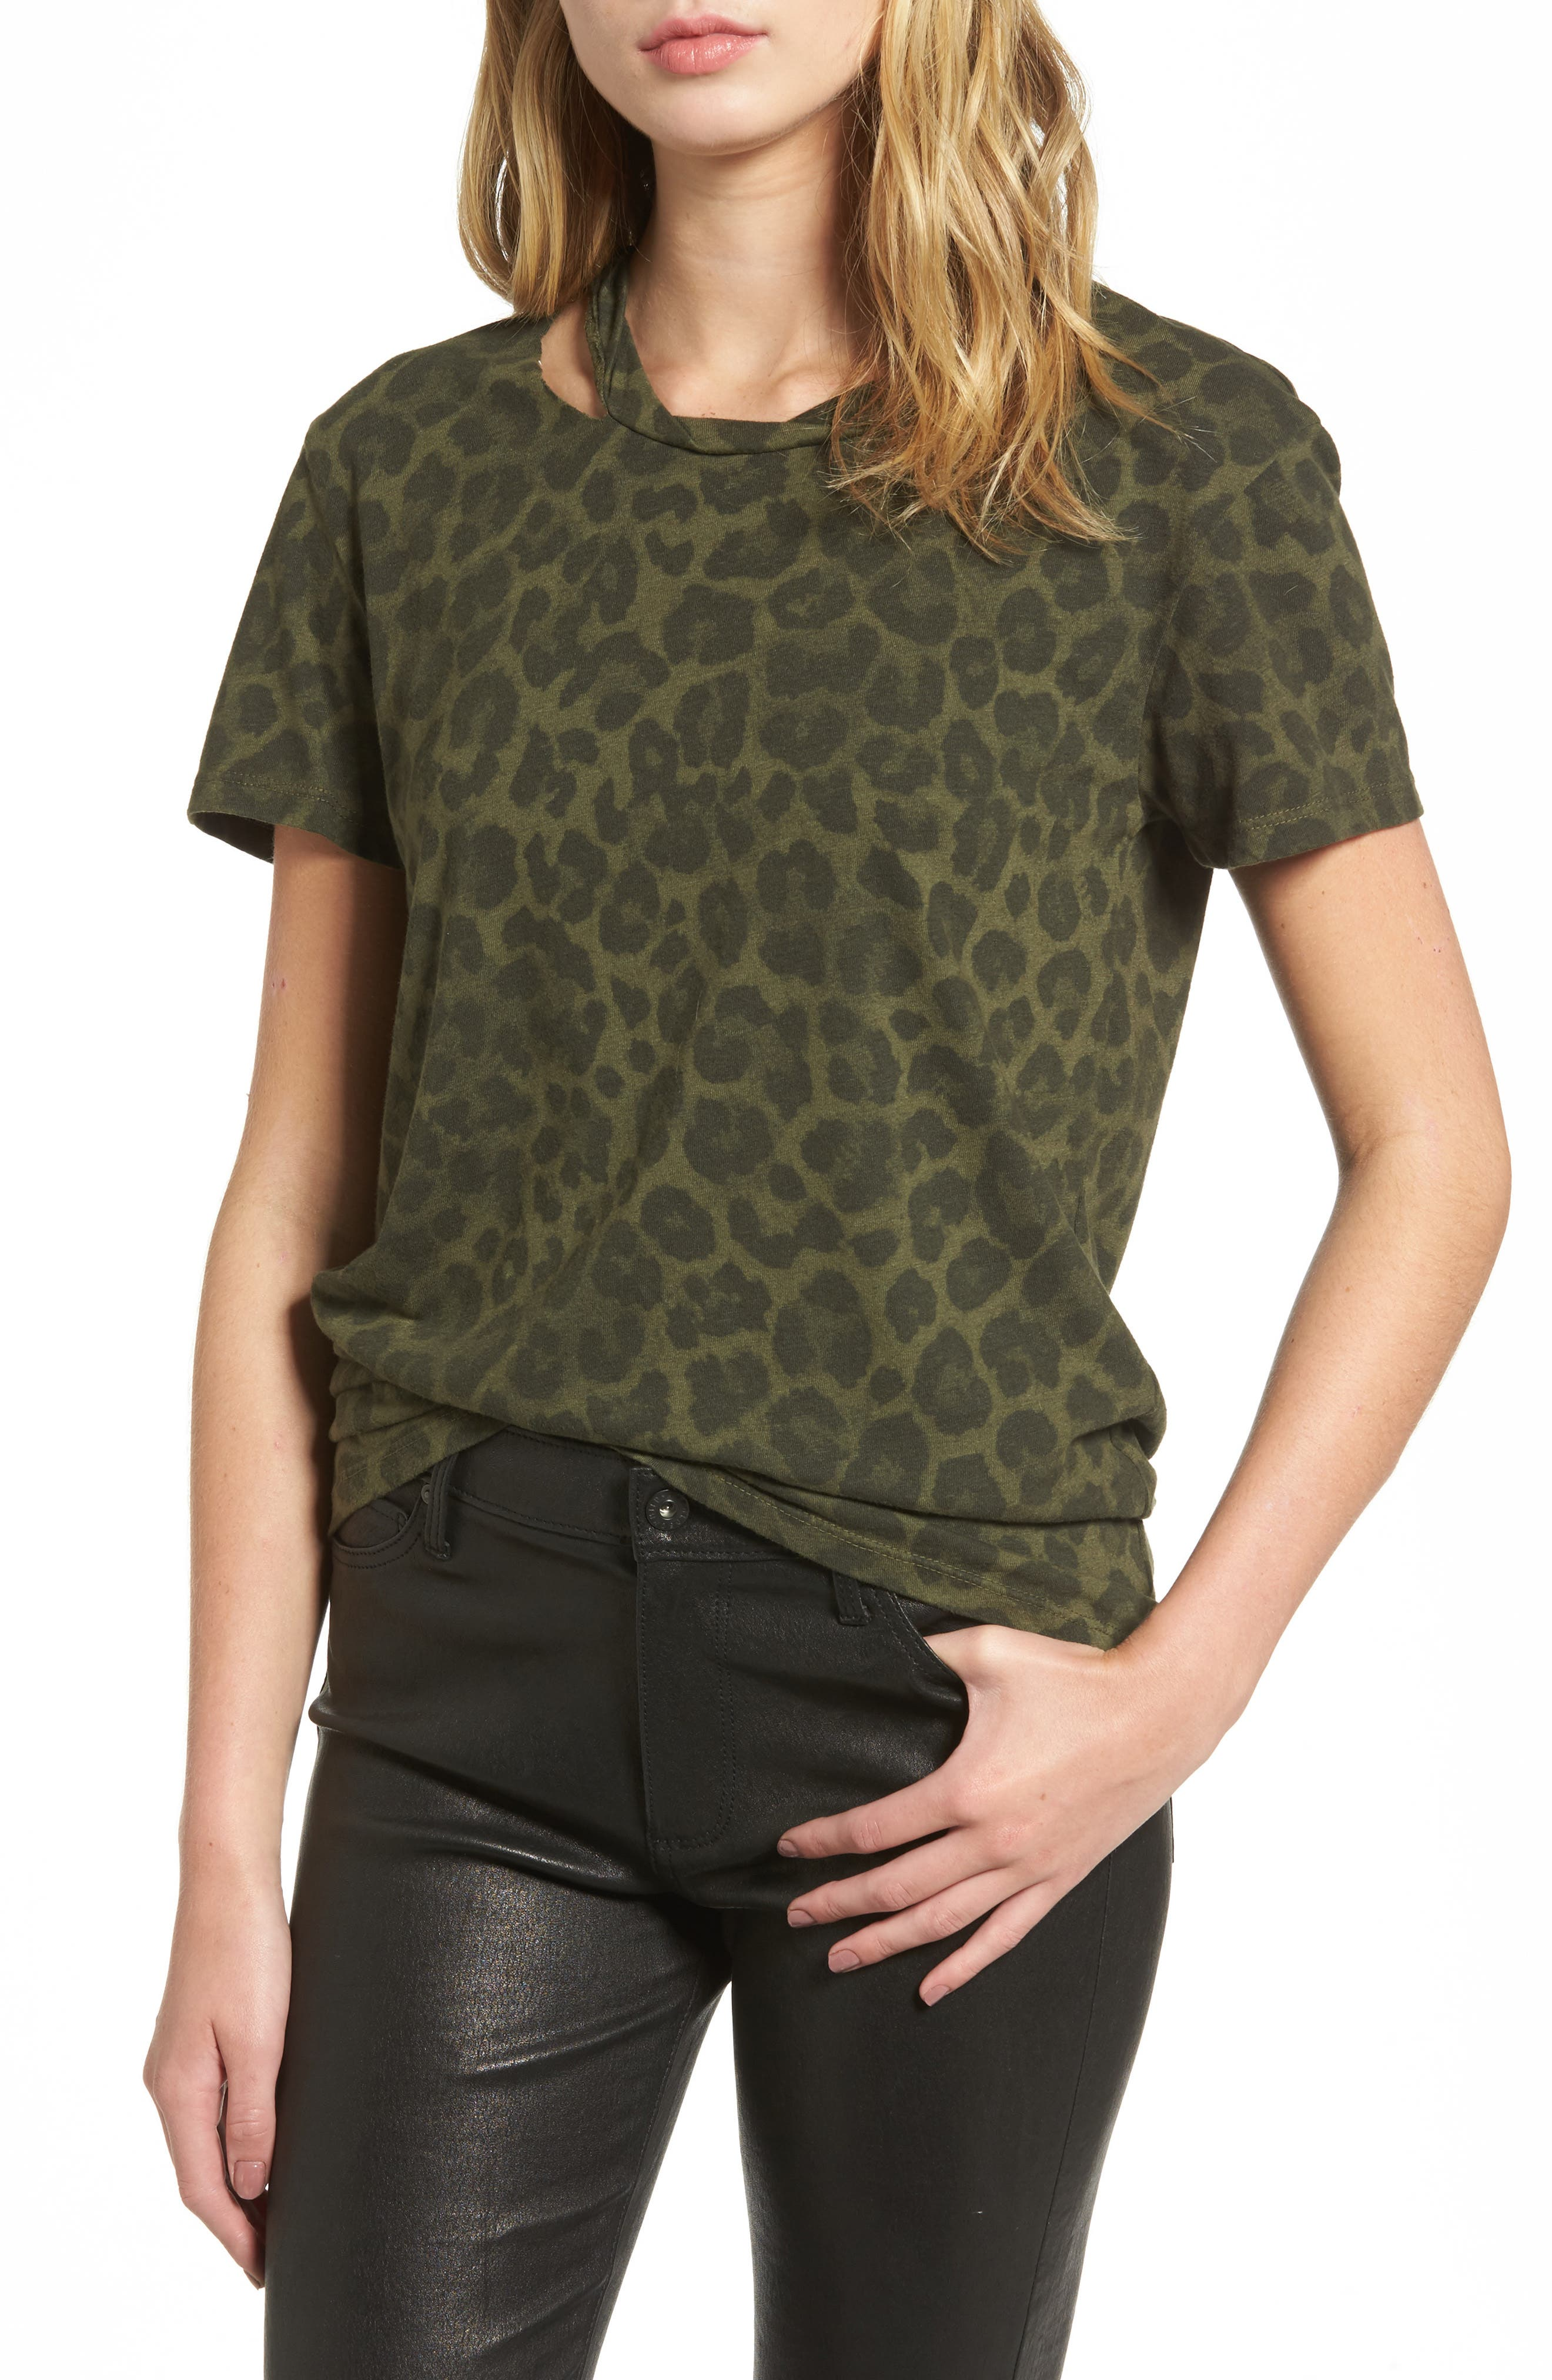 Alternate Image 1 Selected - Pam & Gela Leopard Print Tee